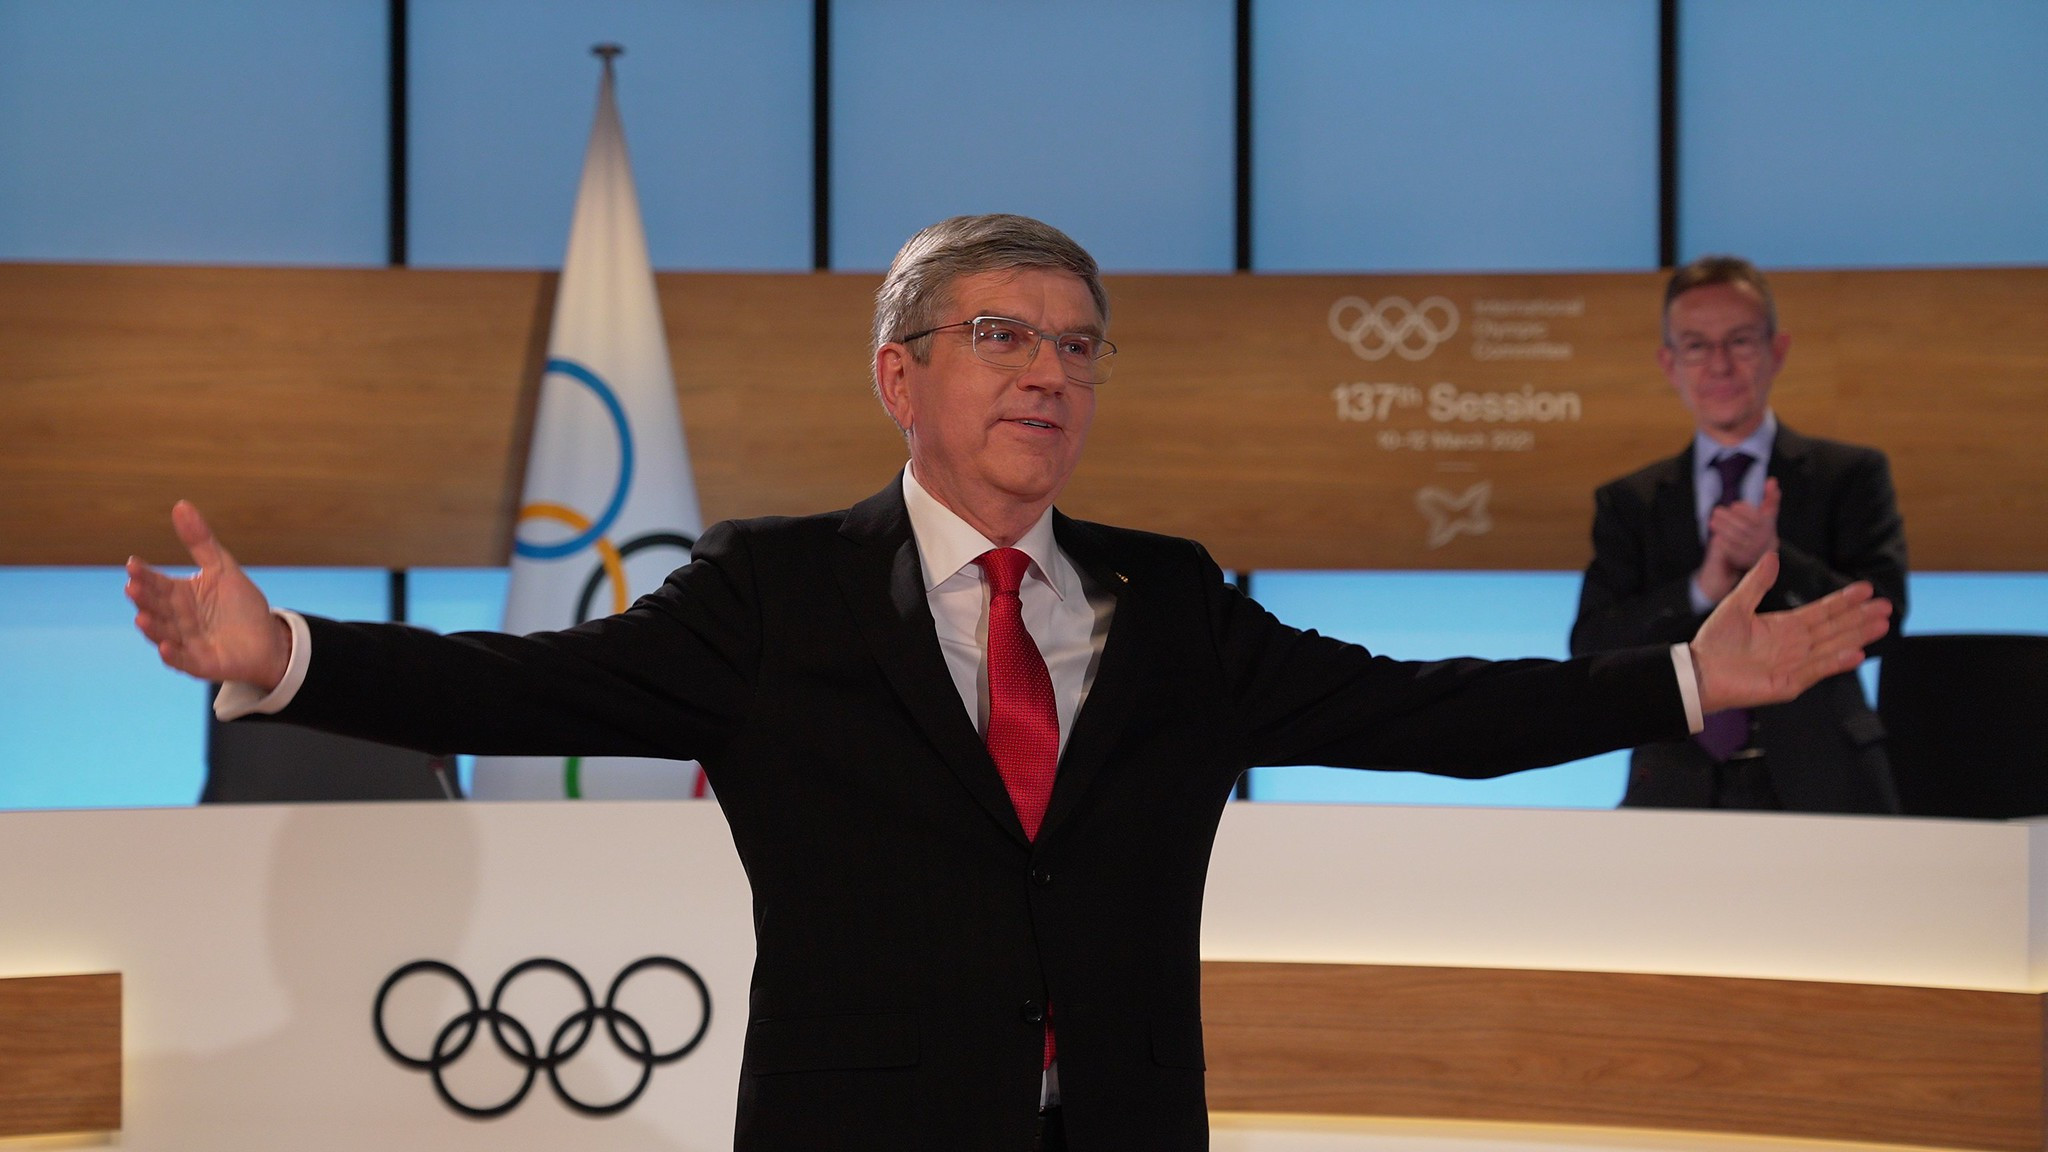 Bach secures second and final term as IOC President at virtual Session